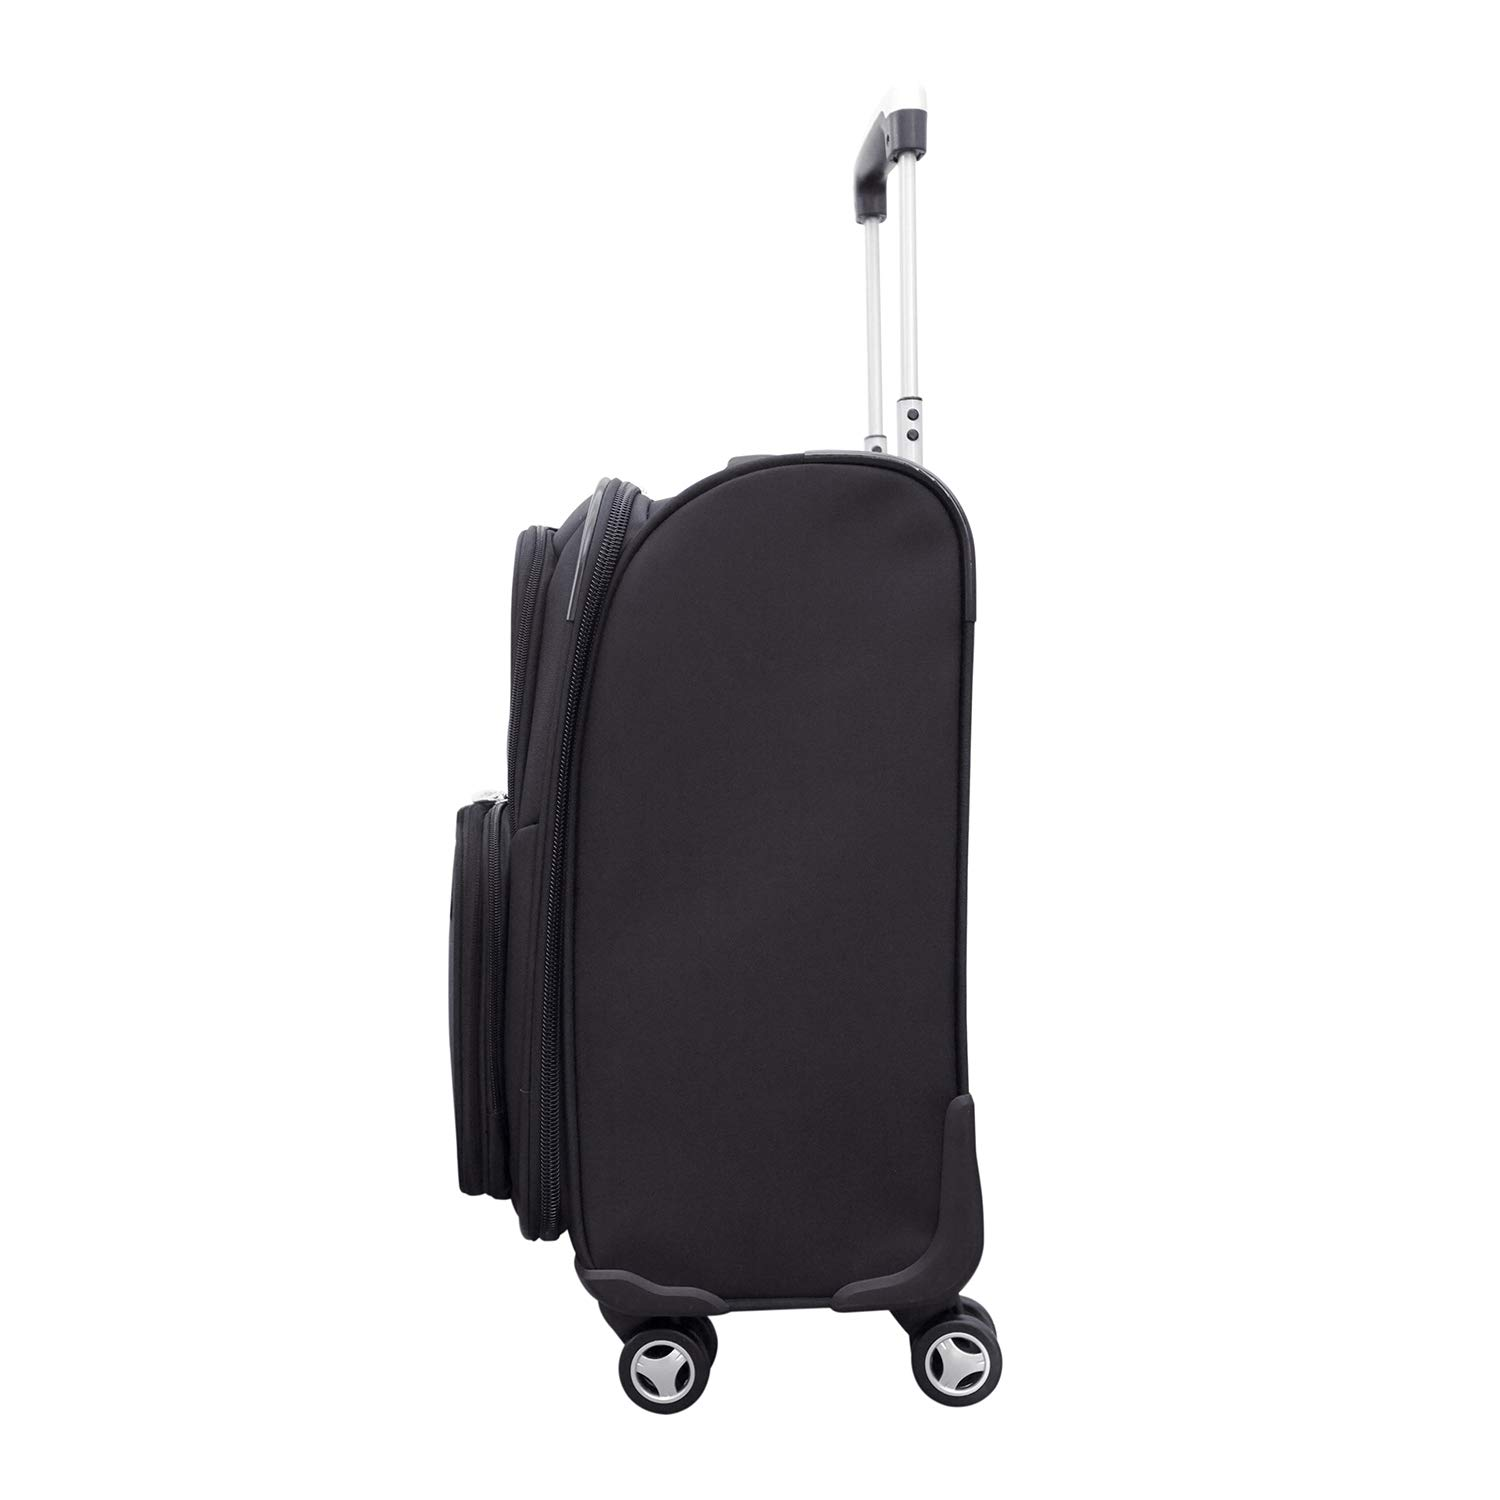 Denco NBA Charlotte Hornets Carry-On Luggage Spinner by Denco (Image #2)